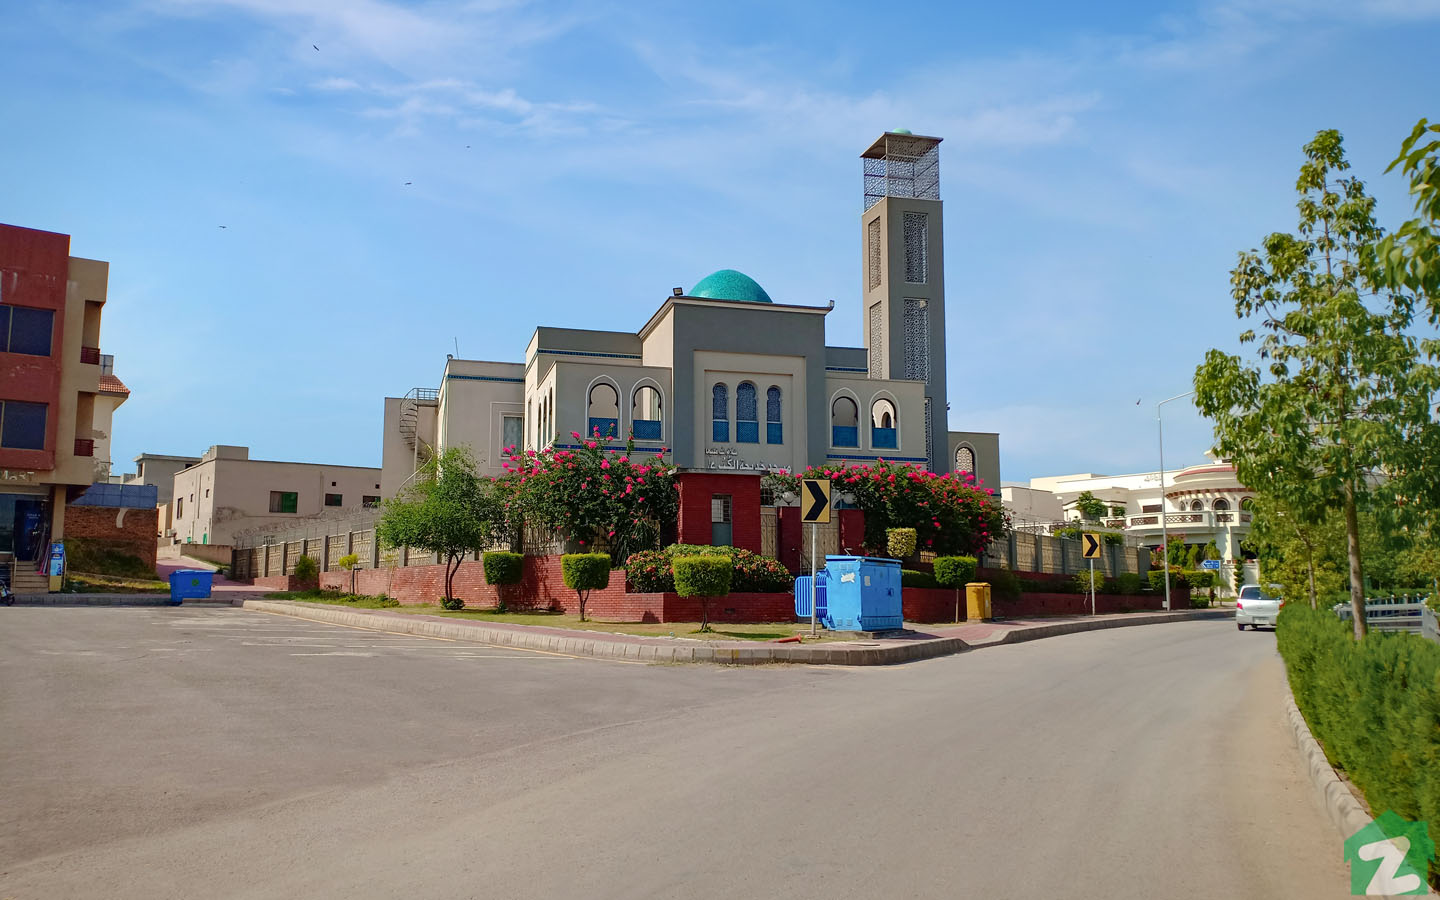 Residents can also offer prayers in nearby mosques